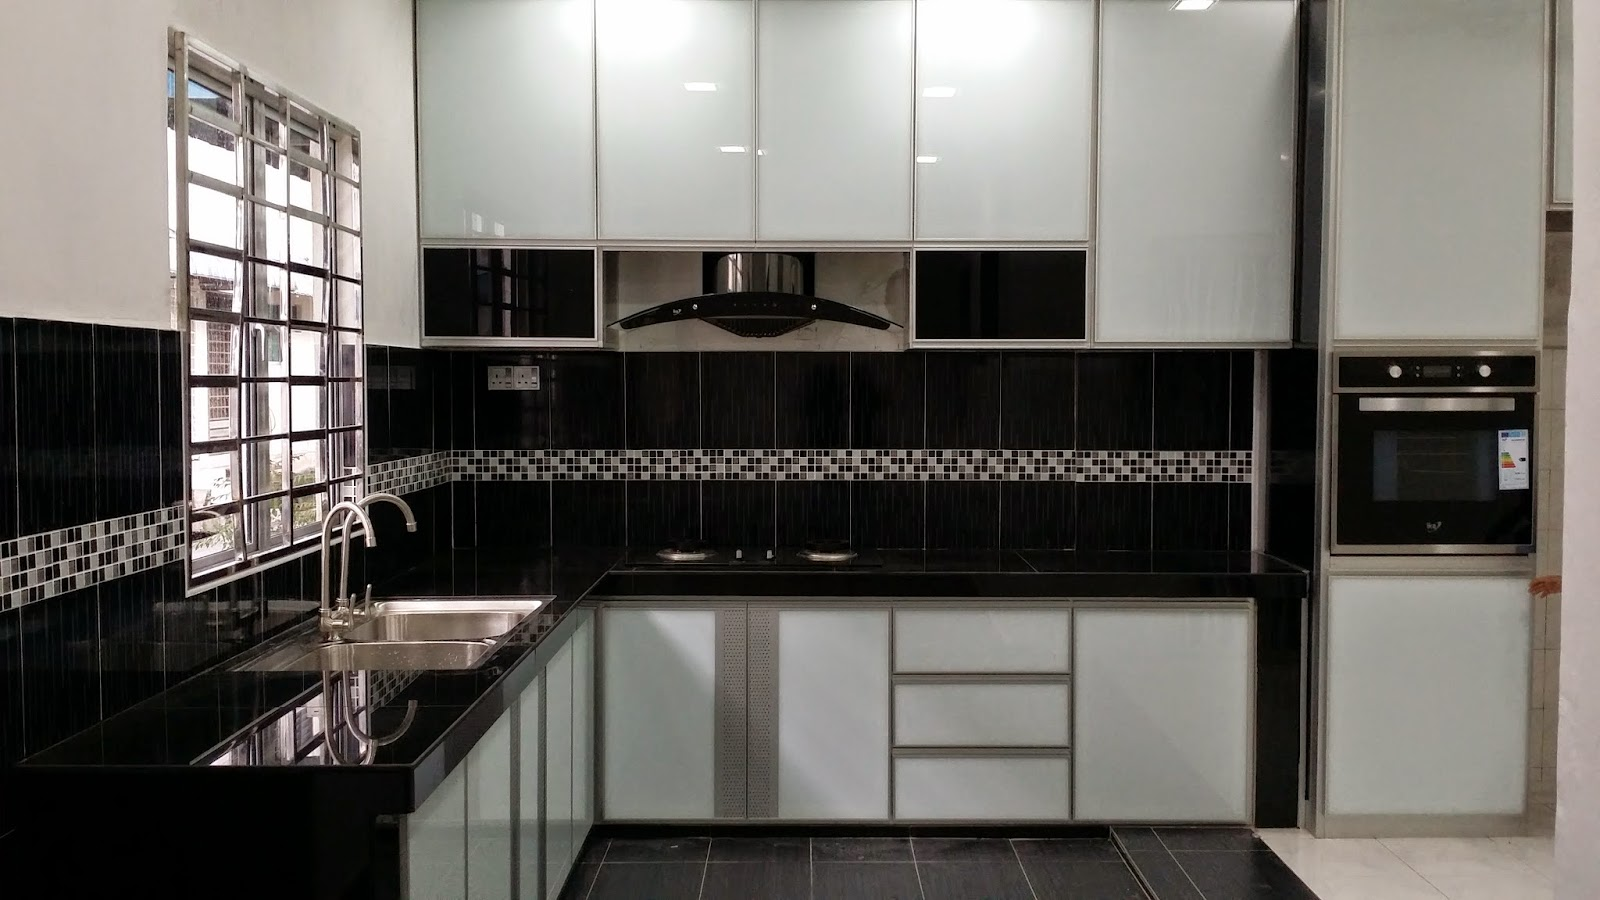 The Journey Of My Life Kitchen Cabinet Kabinet Dapur